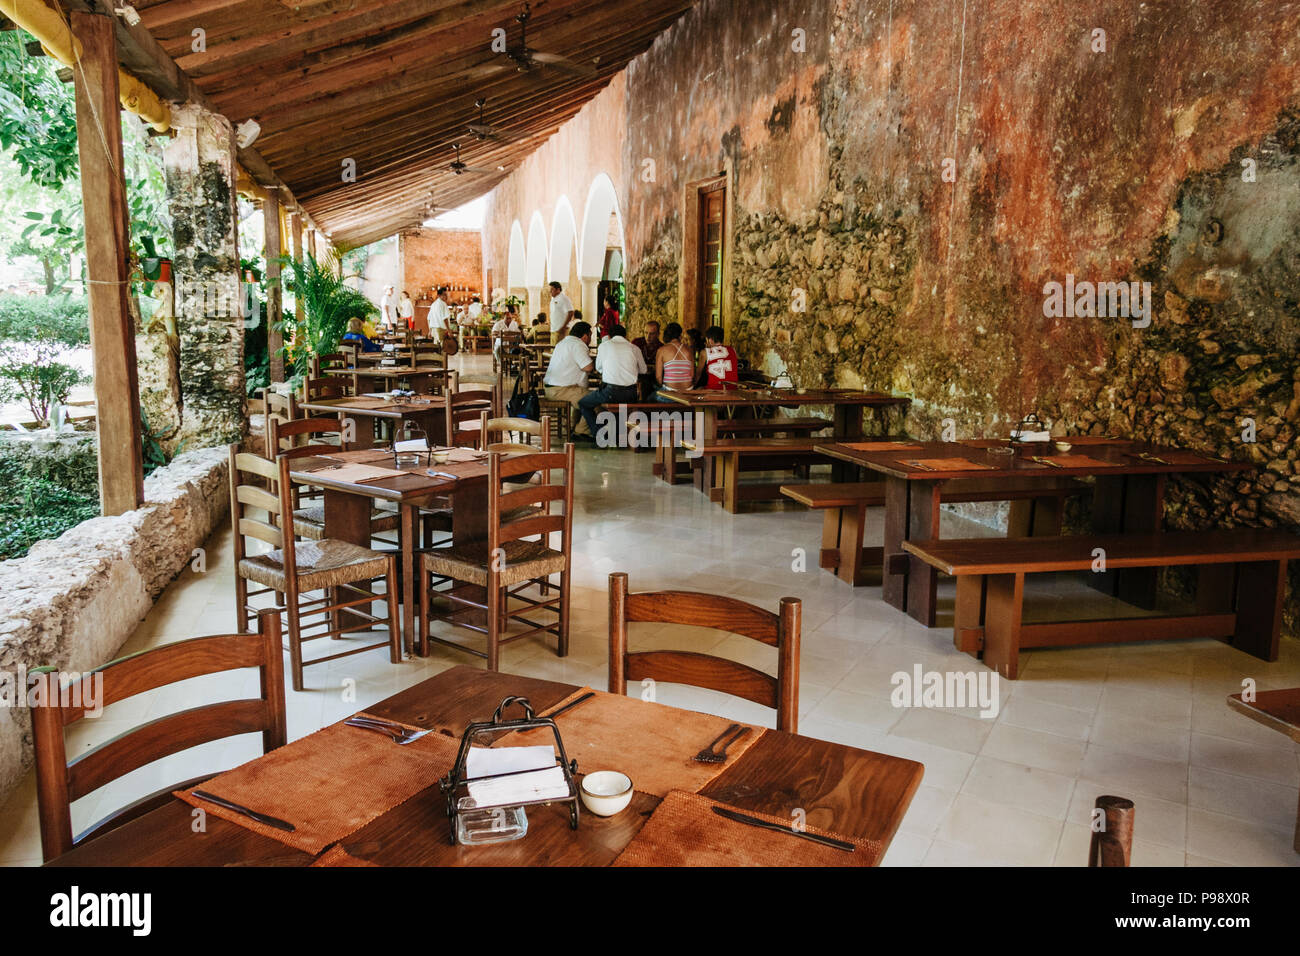 Merida, Yucatan, Mexico : Restaurant at the Hacienda San Pedro Ochil, 38 kms from Merida. Stock Photo